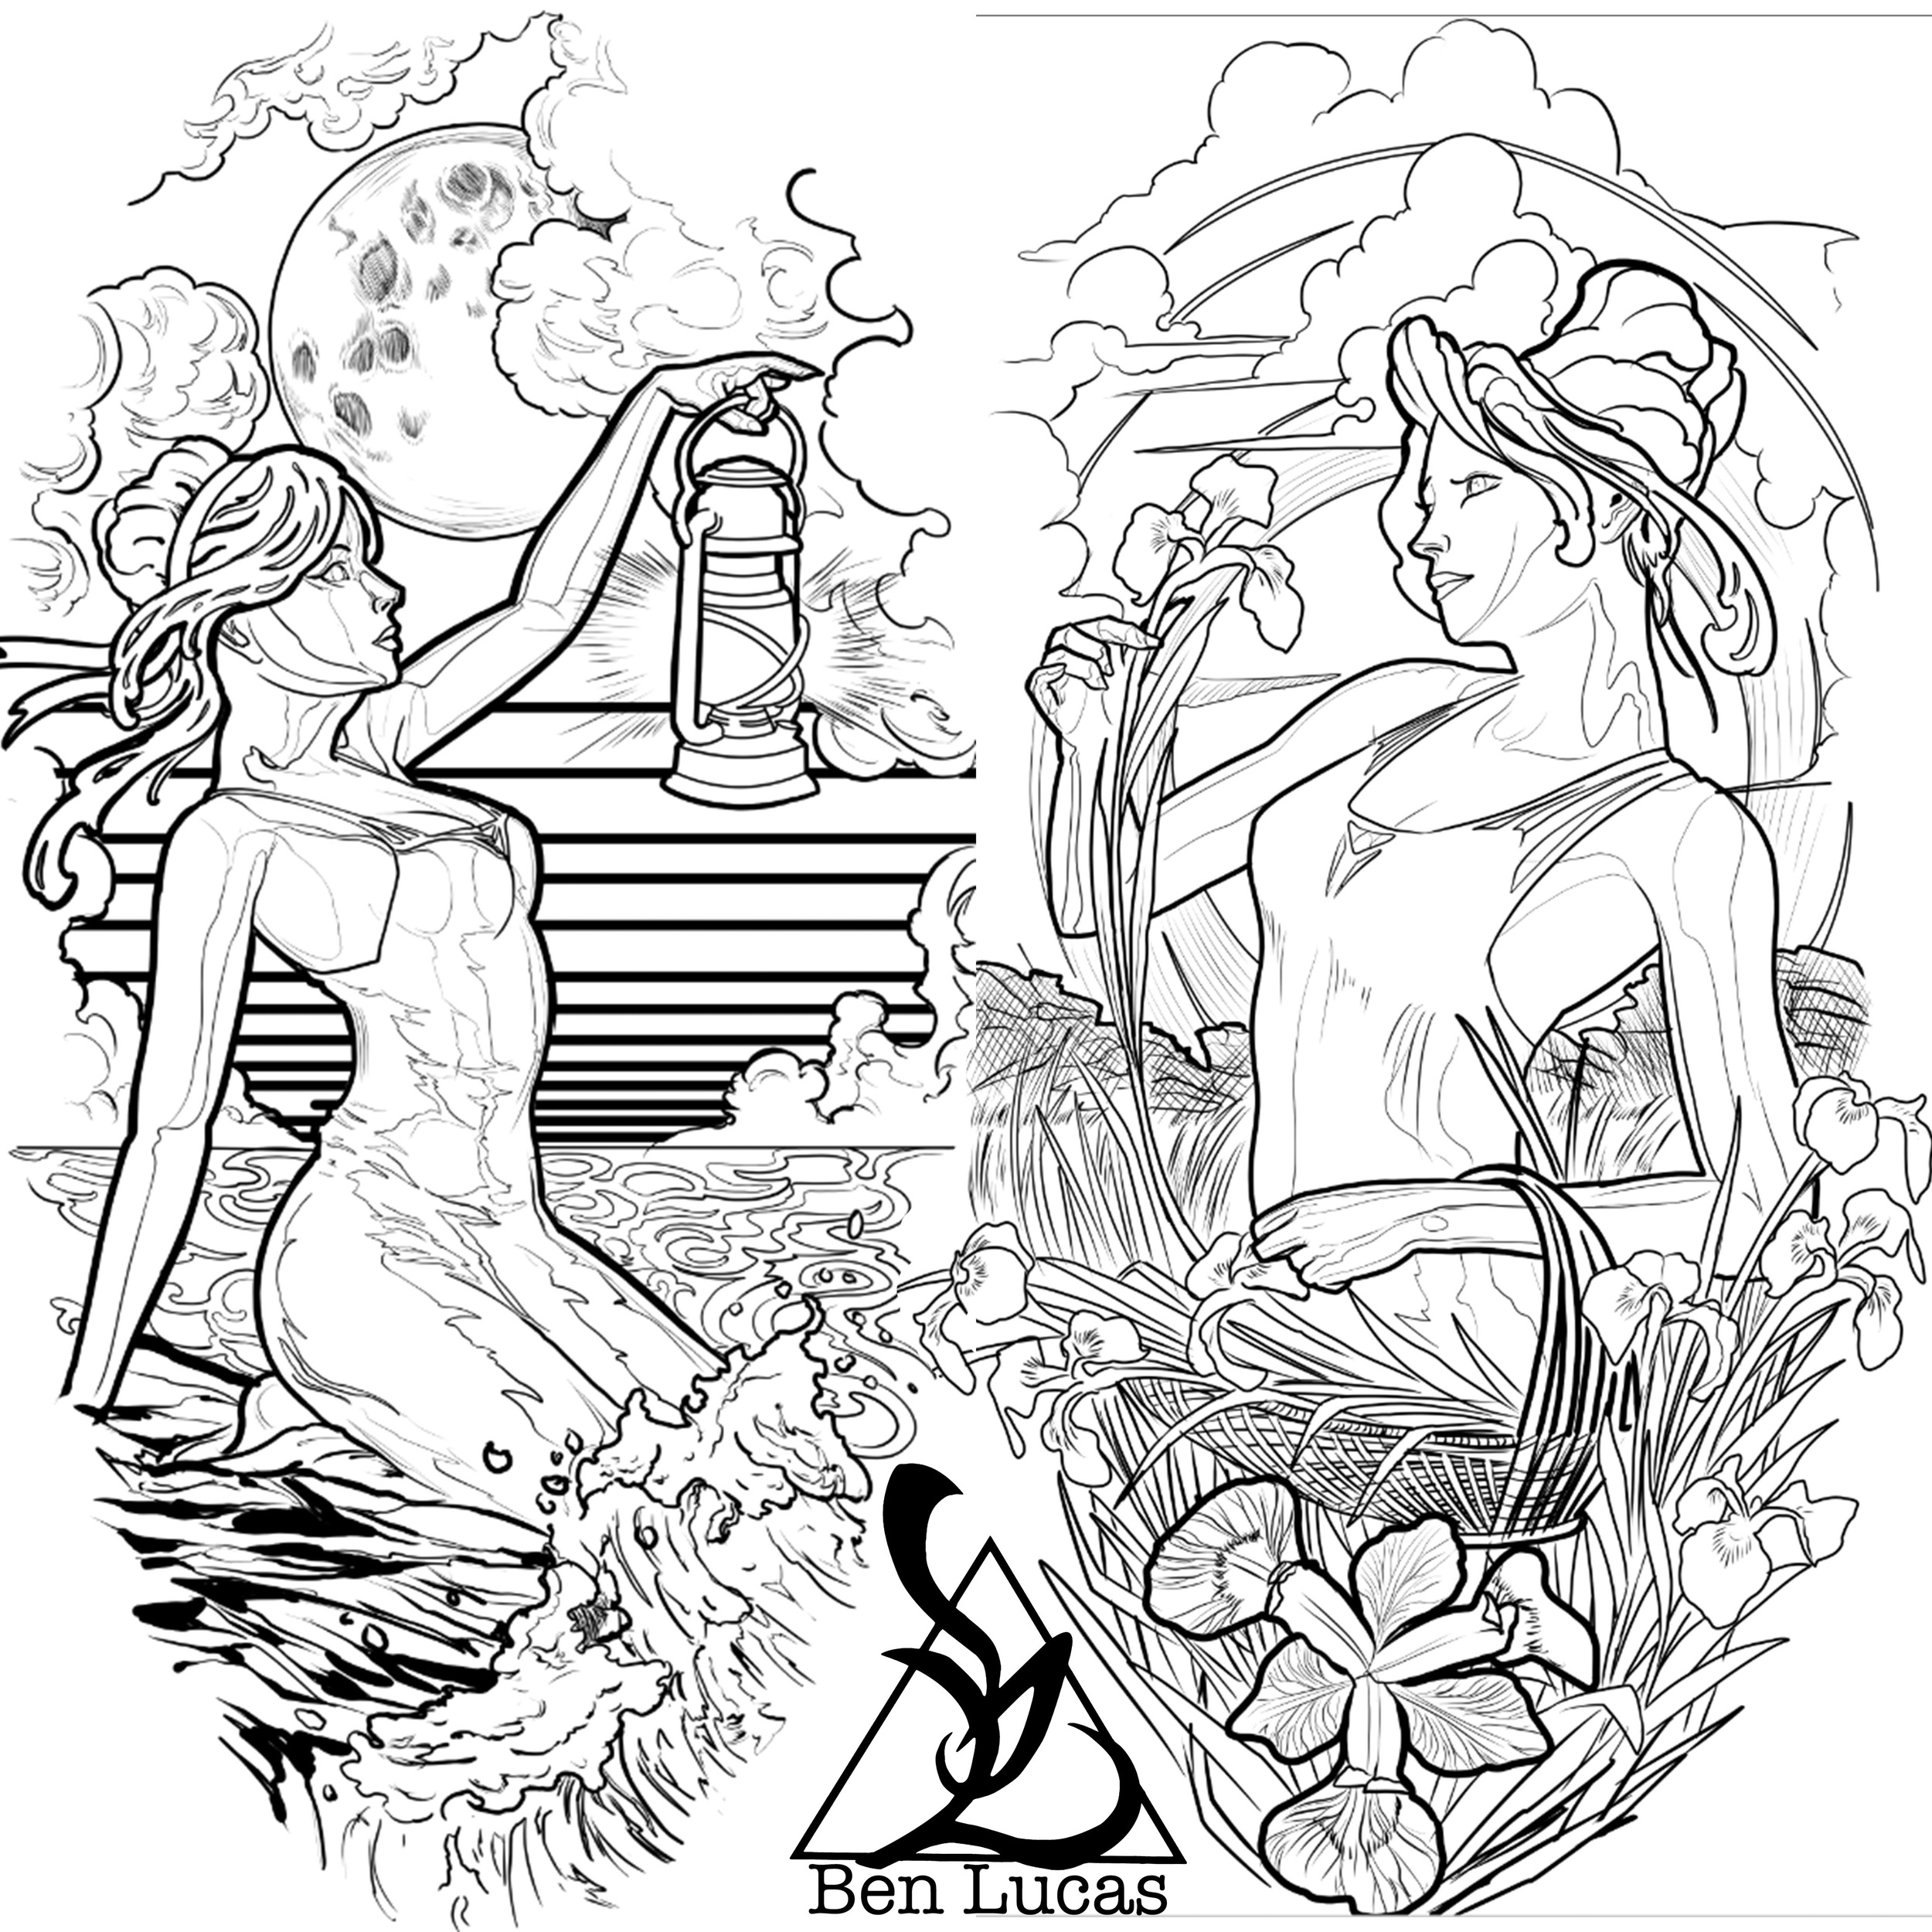 Today I am starting these two forearm tattoos on a new client. I will just be doing the lifework at first, but I will try to show the work in progress. I personally think that these would make better full sleeves, but we as tattoo artist are limited by the commission work that we are assigned. Alas, we just have to make do, and do the best we can everyday.